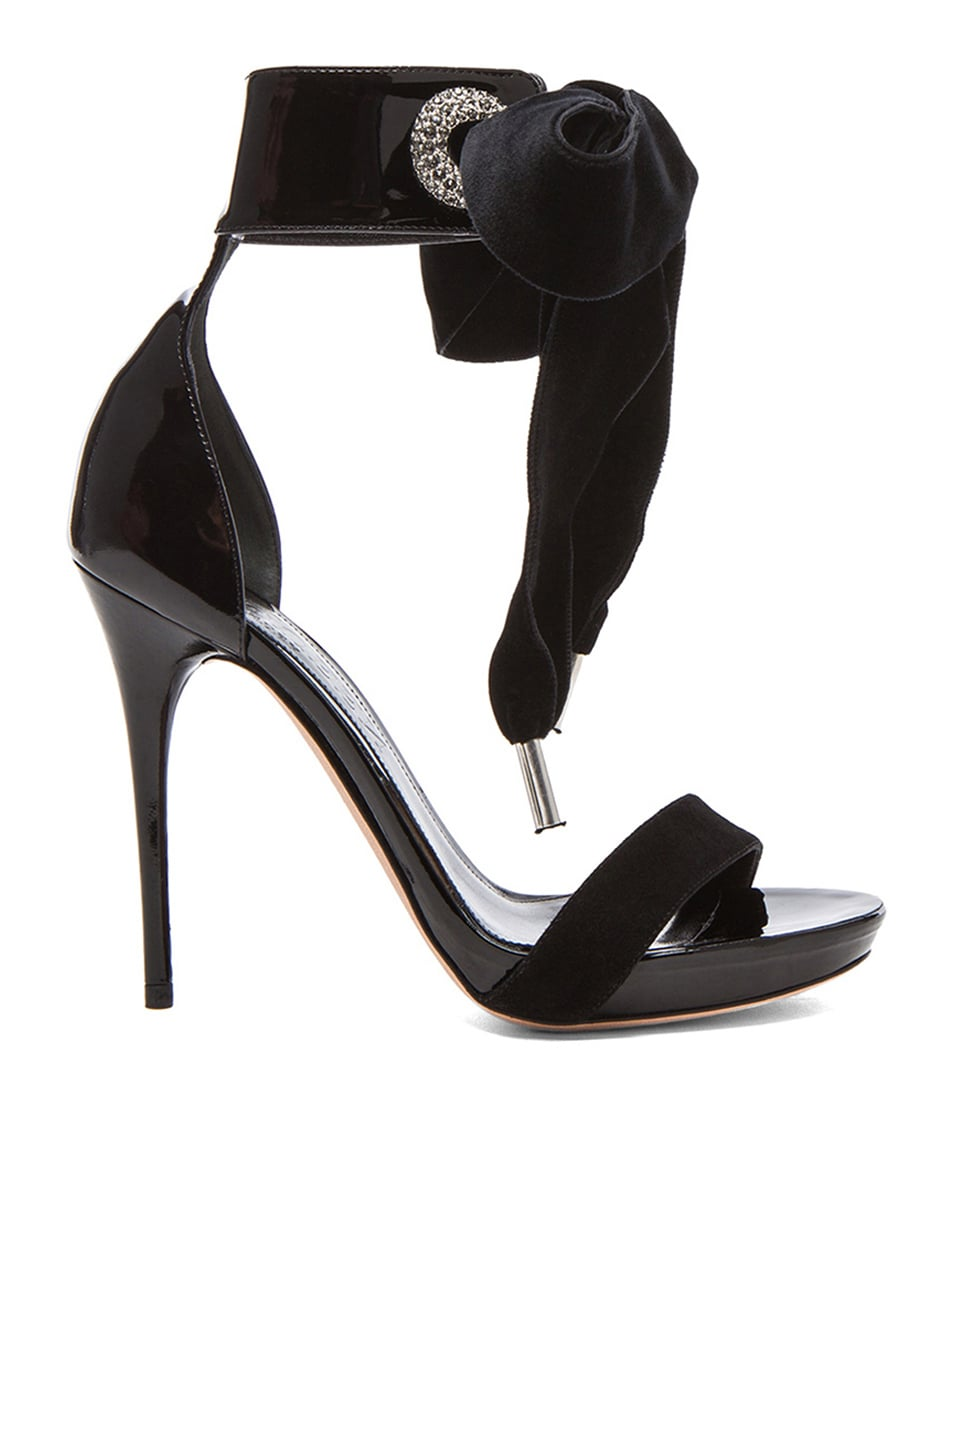 Image 1 of Alexander McQueen Diamante Eyelet Leather Sandals in Black